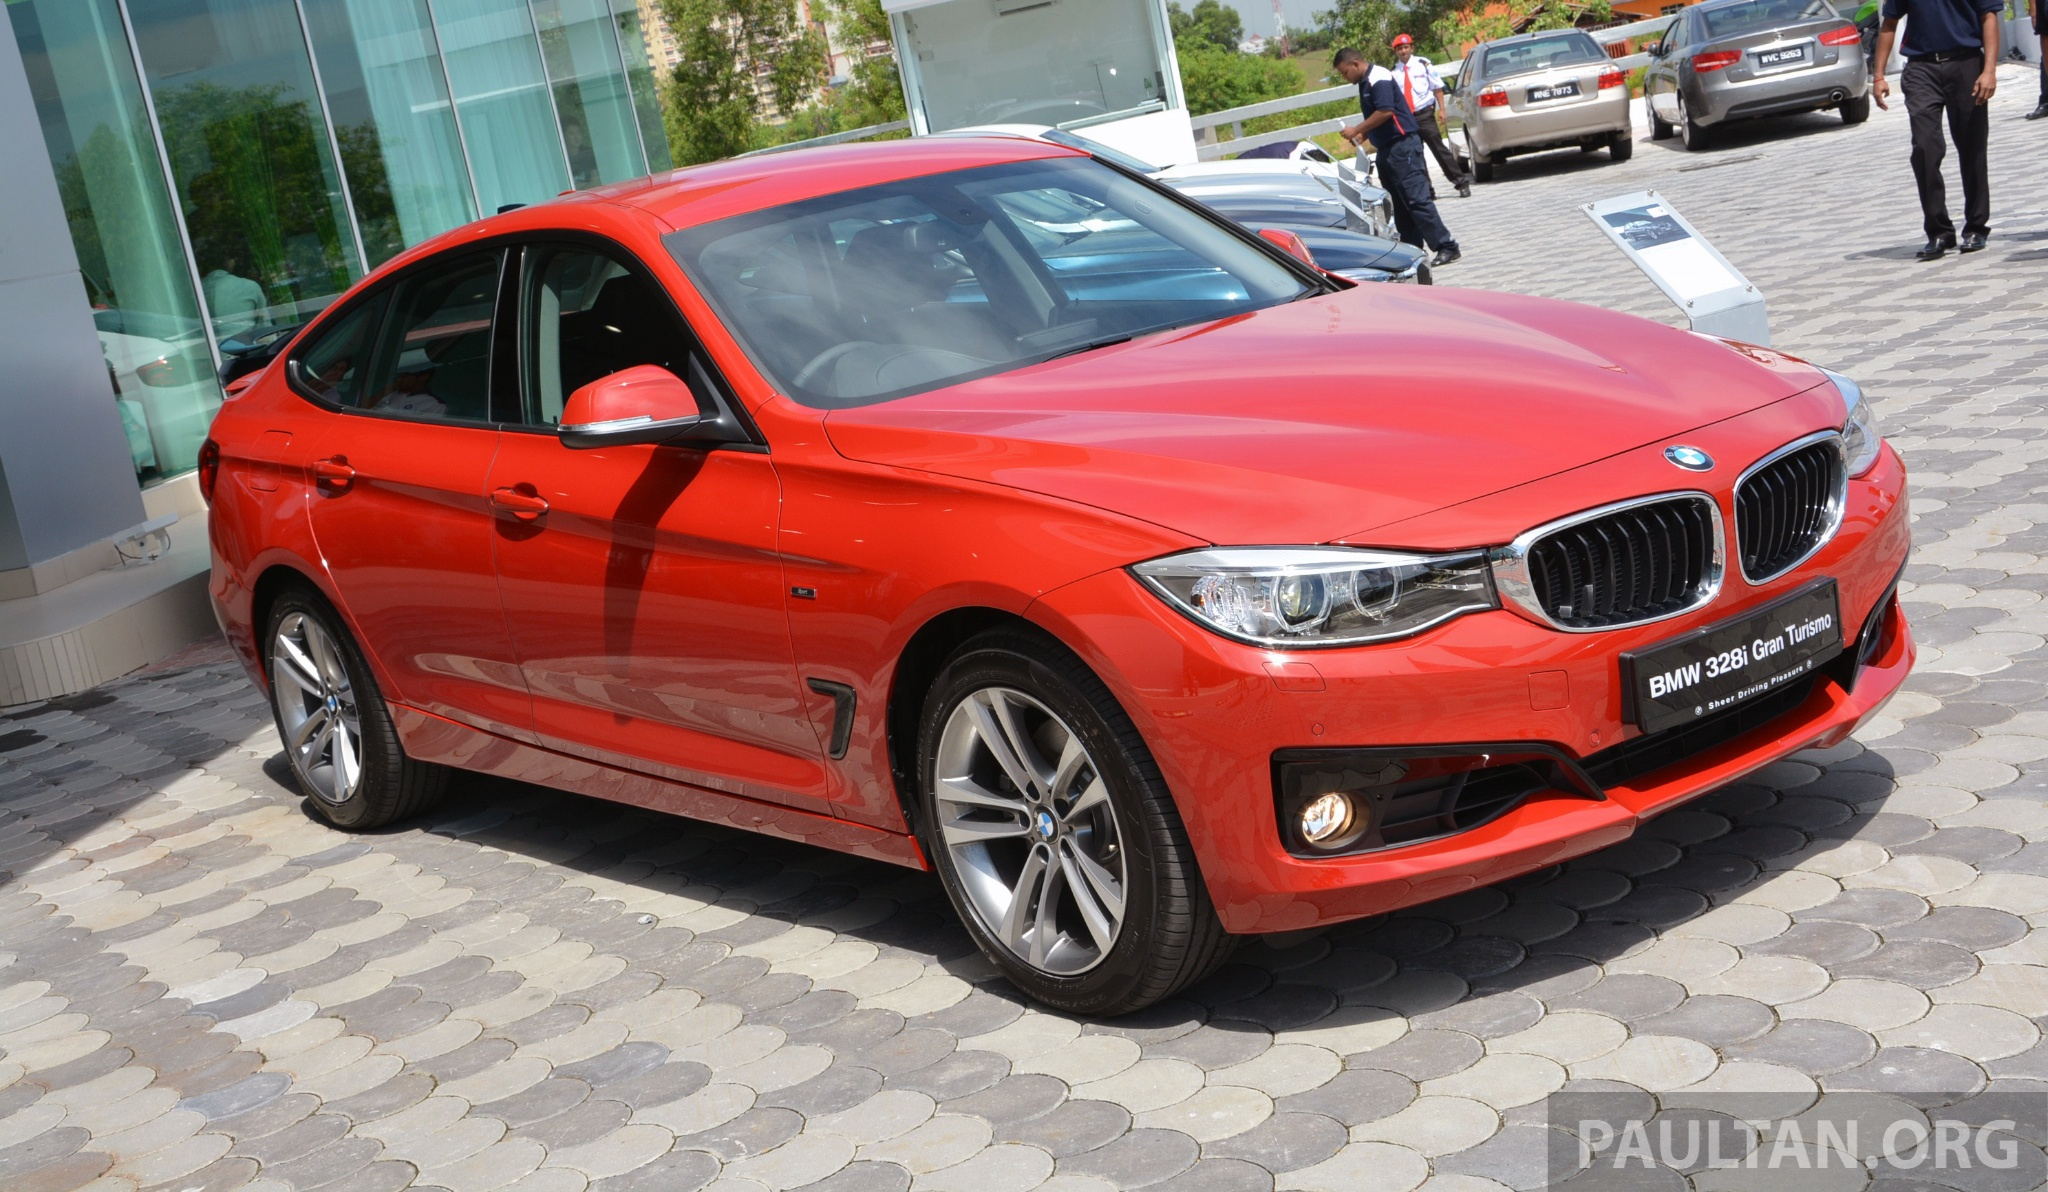 bmw 3 series gran turismo debuts 328i gt rm349k image 179027. Black Bedroom Furniture Sets. Home Design Ideas